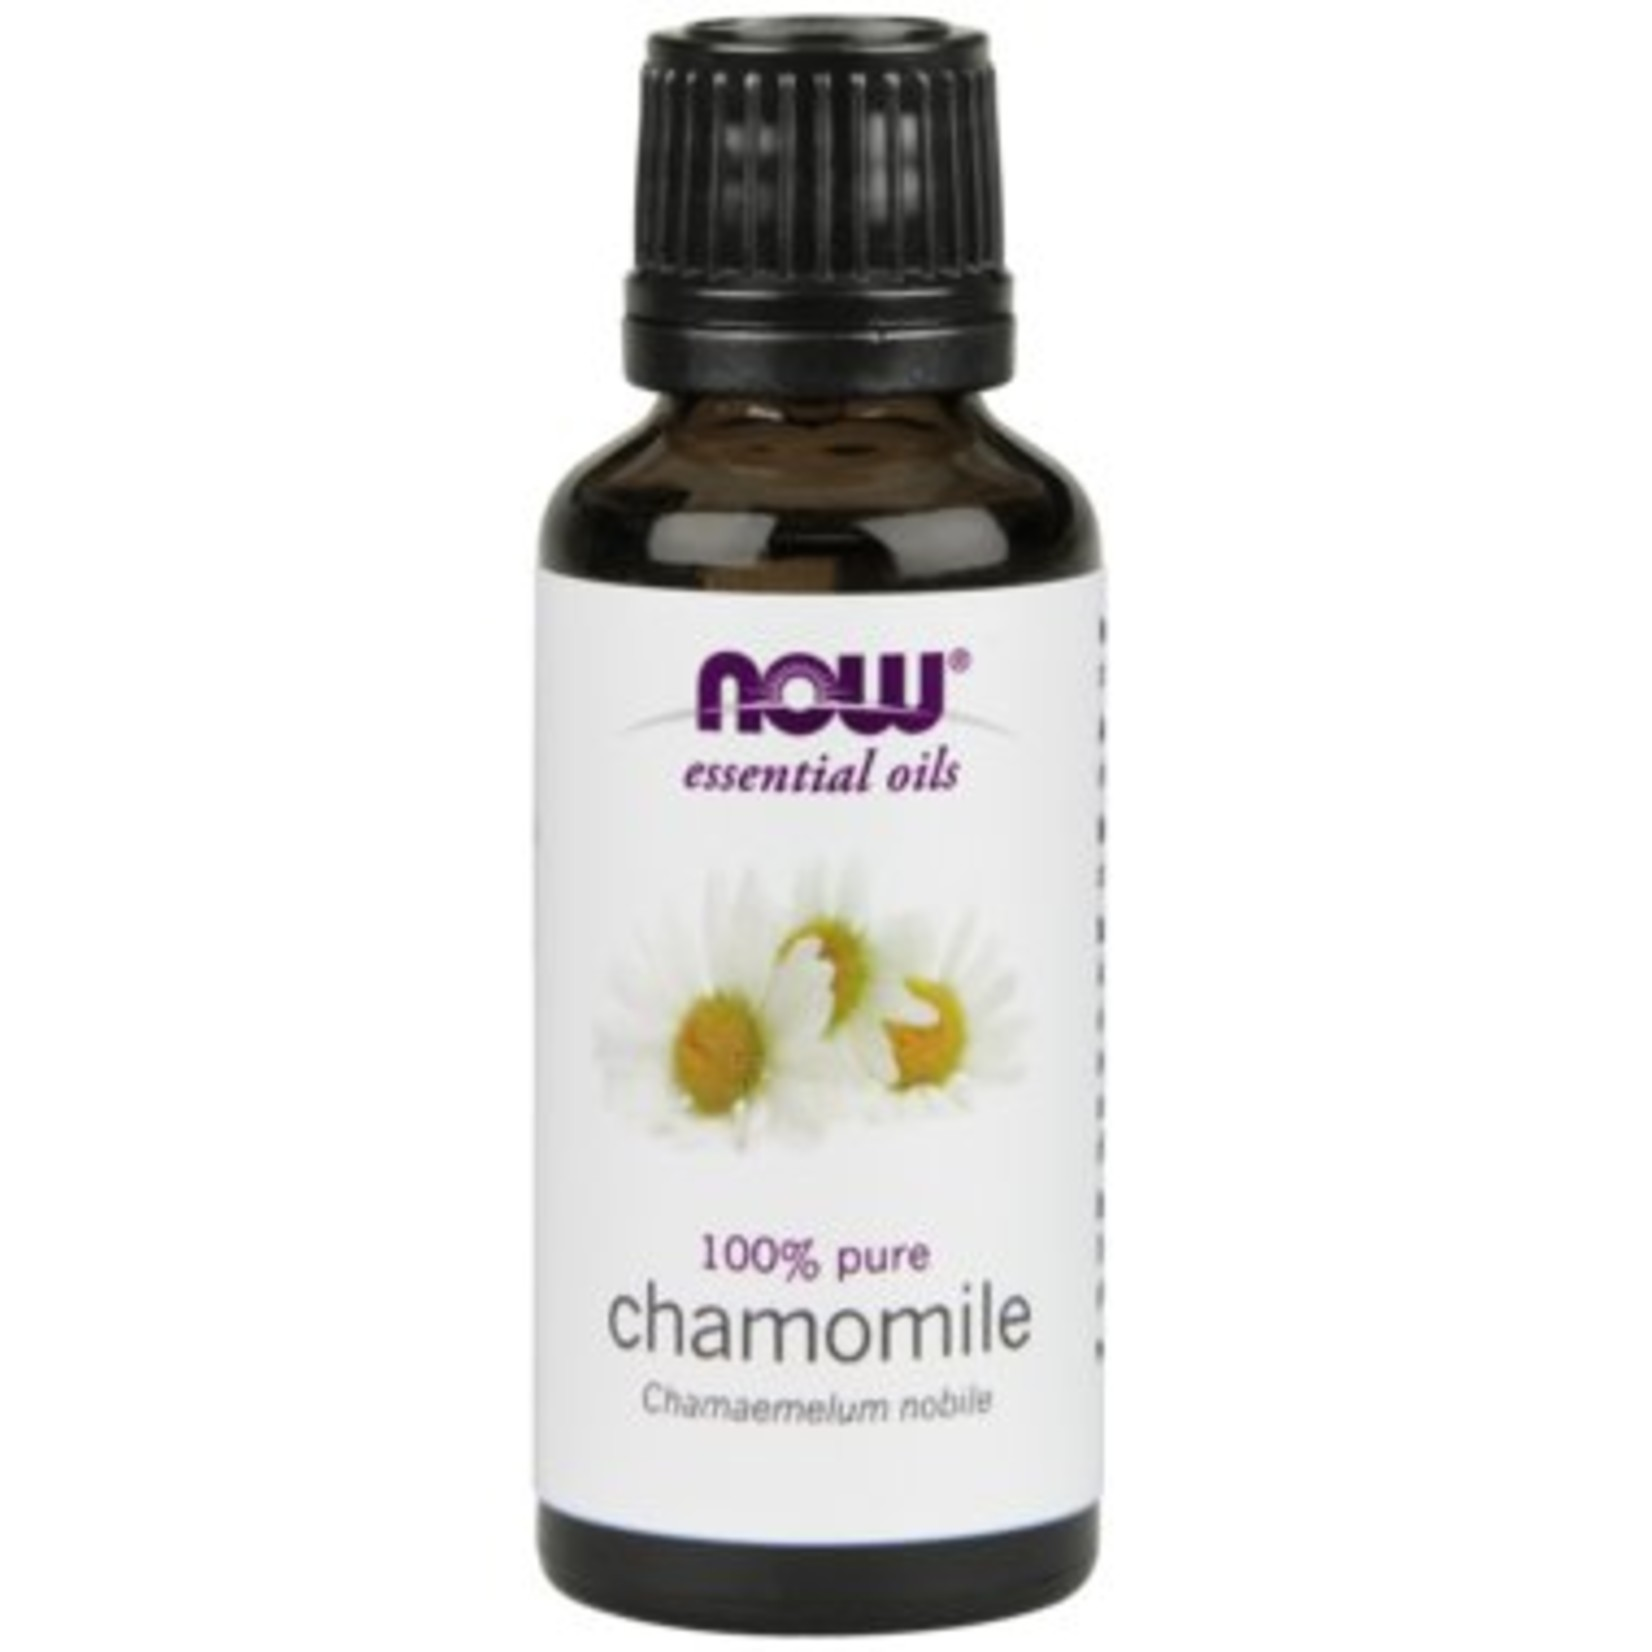 NOW NOW 100% Chamomile Essential Oil 10ml